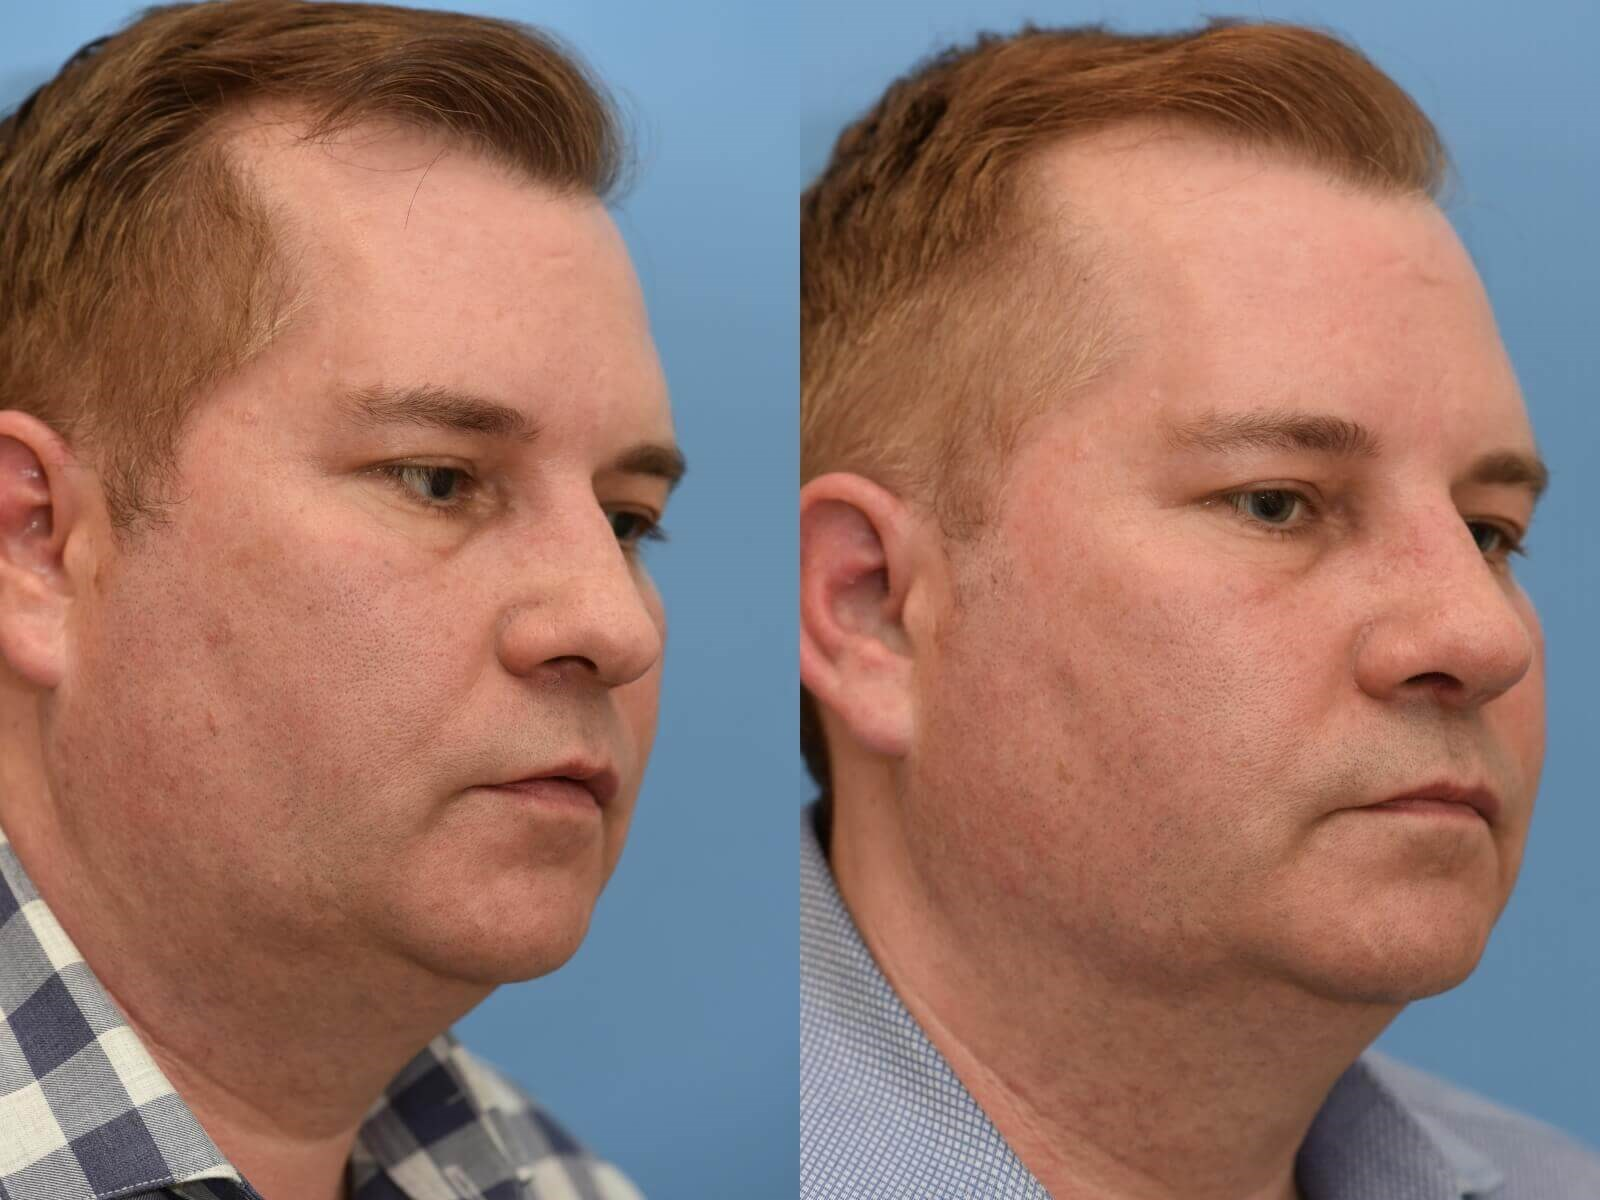 Restored Breathing! Before and After